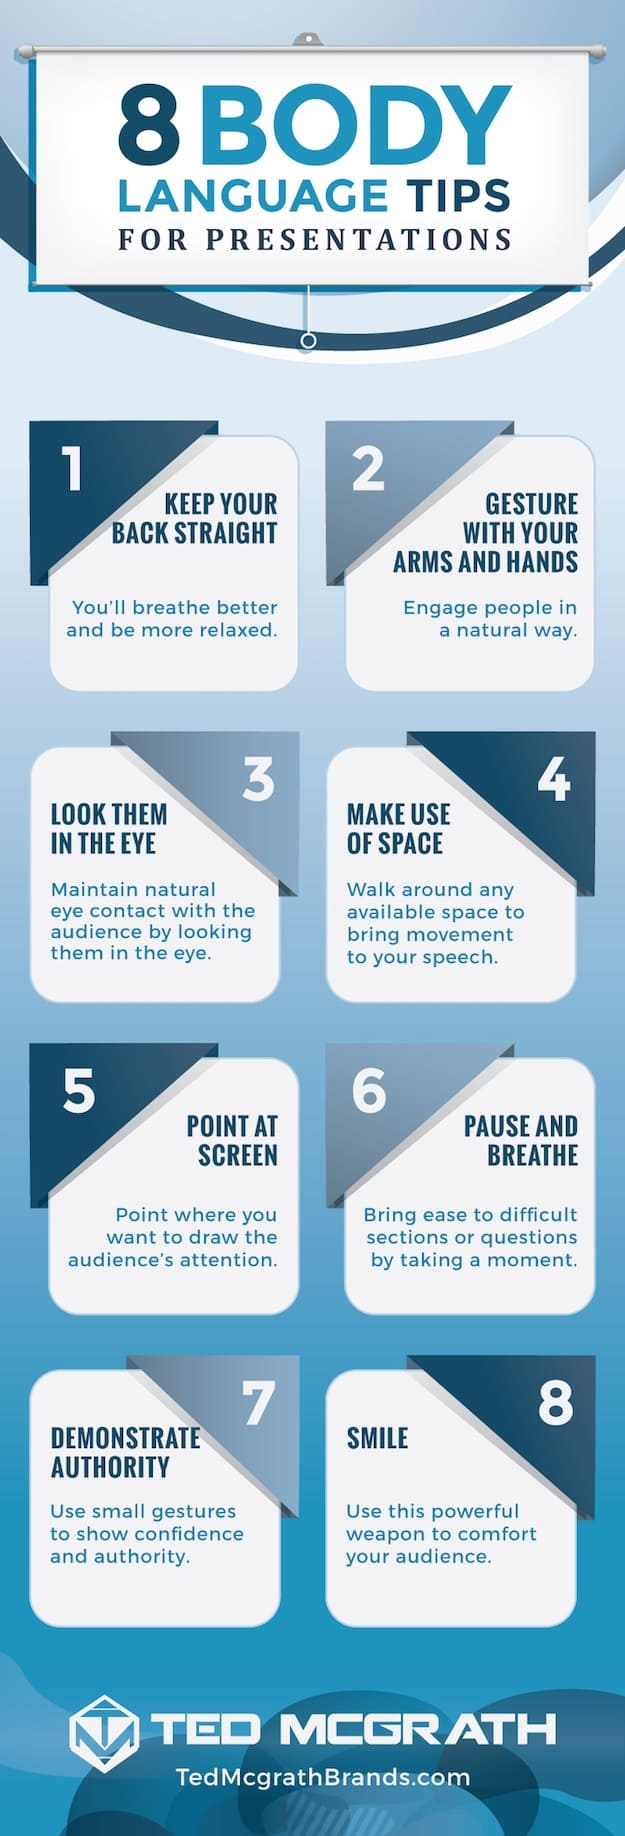 8 Body Language Tips for Presentations